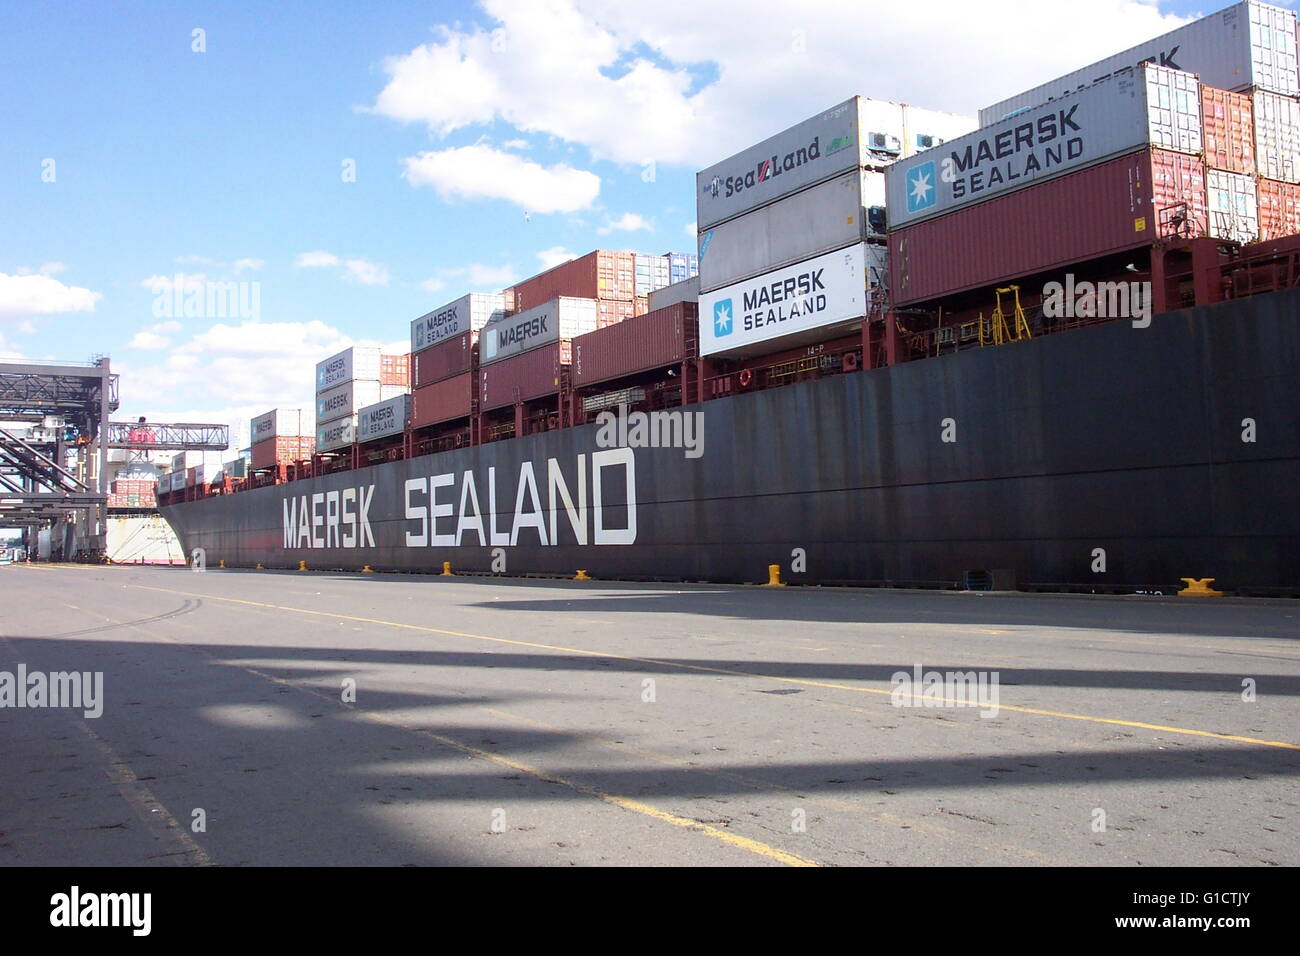 The forward 2/3 of the SEALAND COMMITMENT; a 950-foot containership Stock Photo